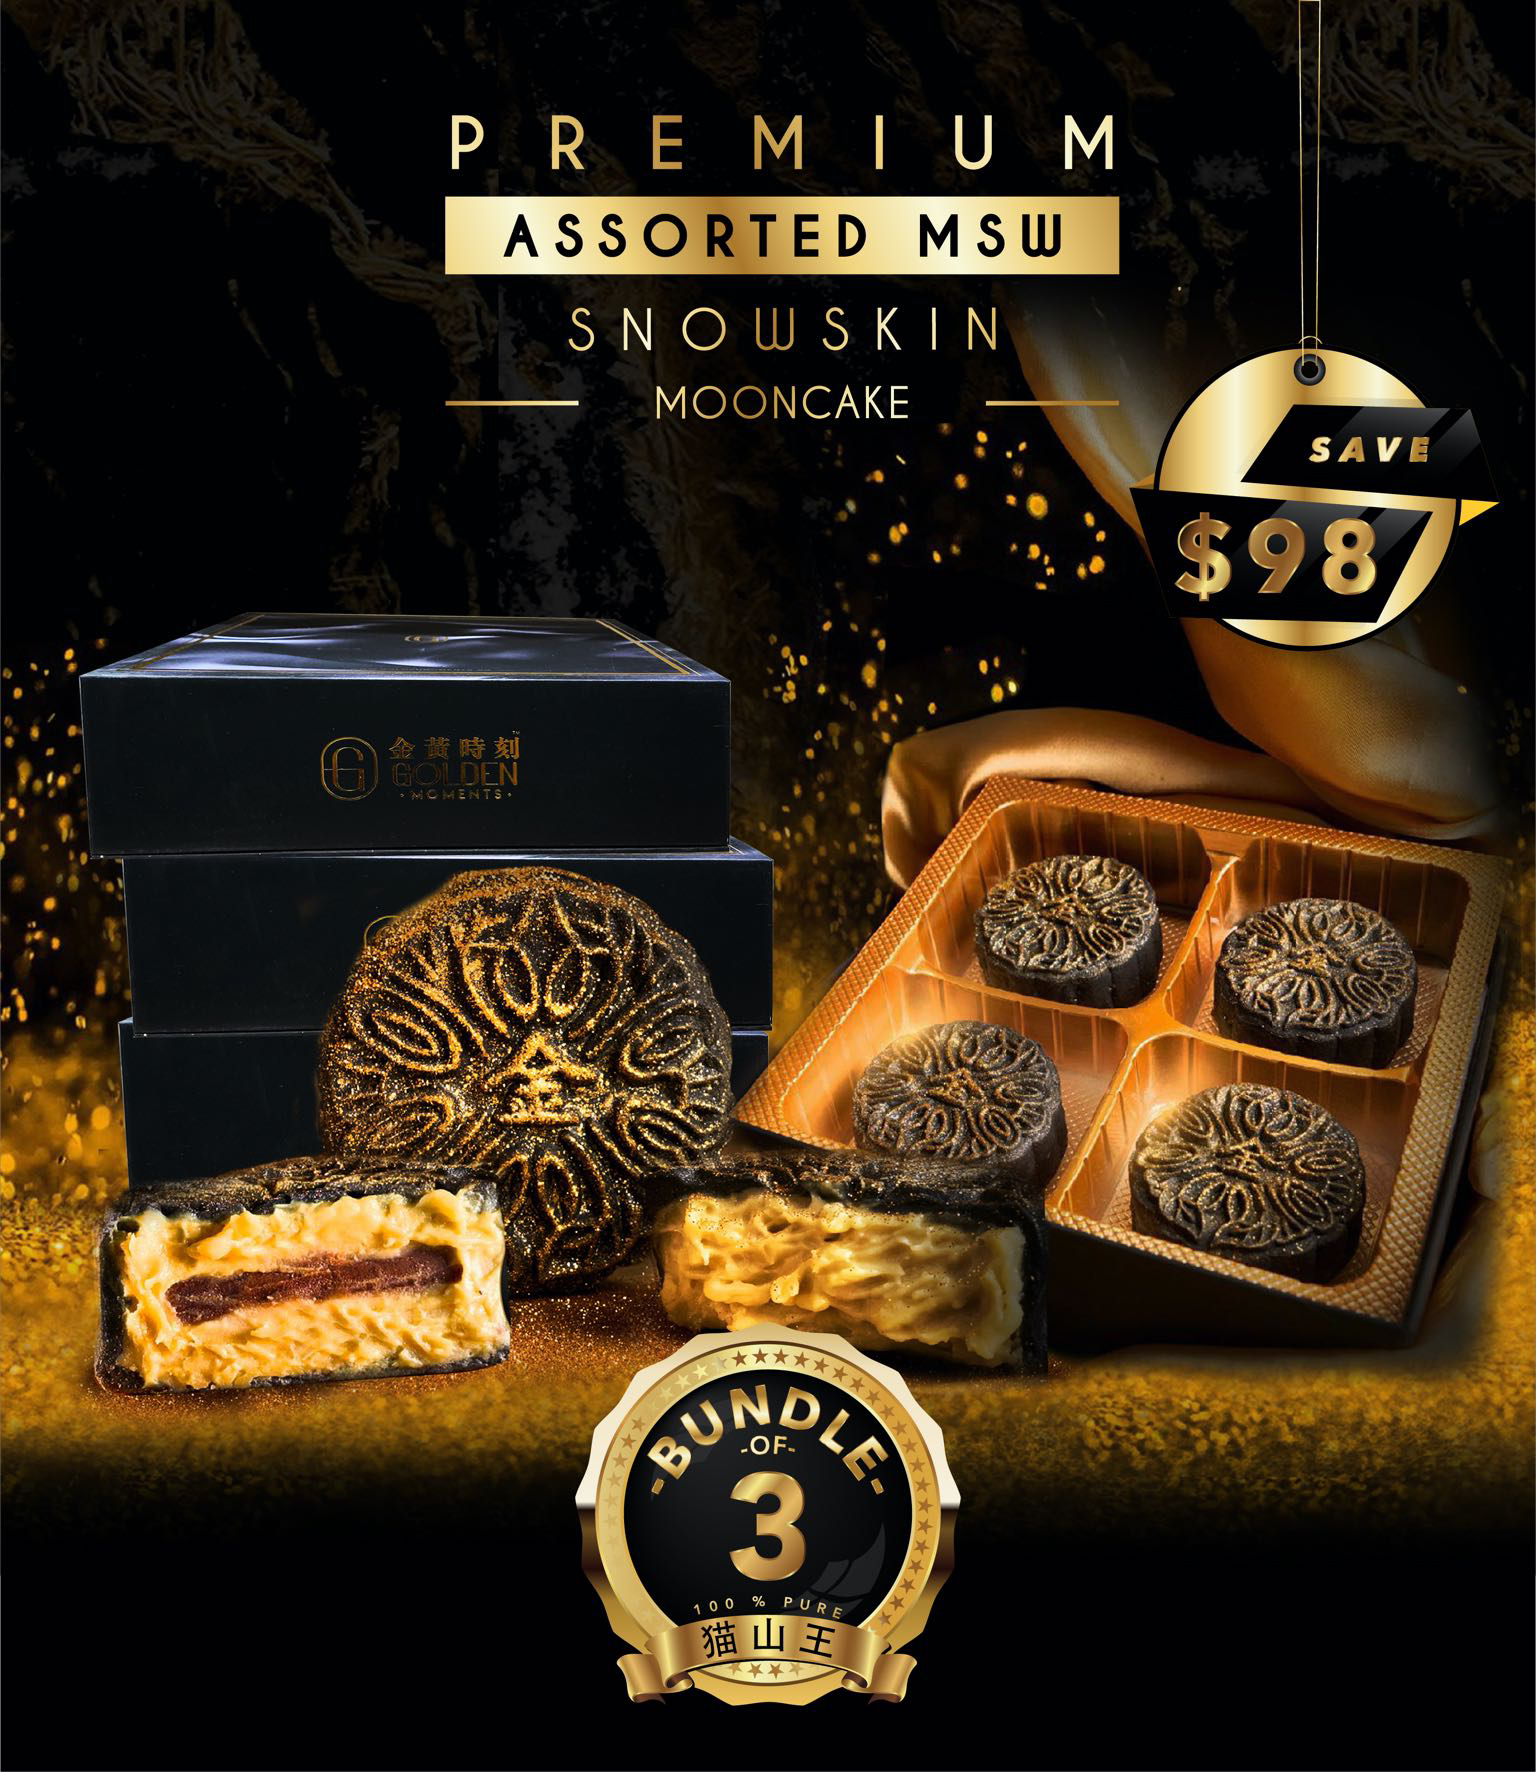 Assorted Mao Shan Wang Flavours Snowskin Mooncake (Box of 4) - Bundle of 3 (SAVE $98)